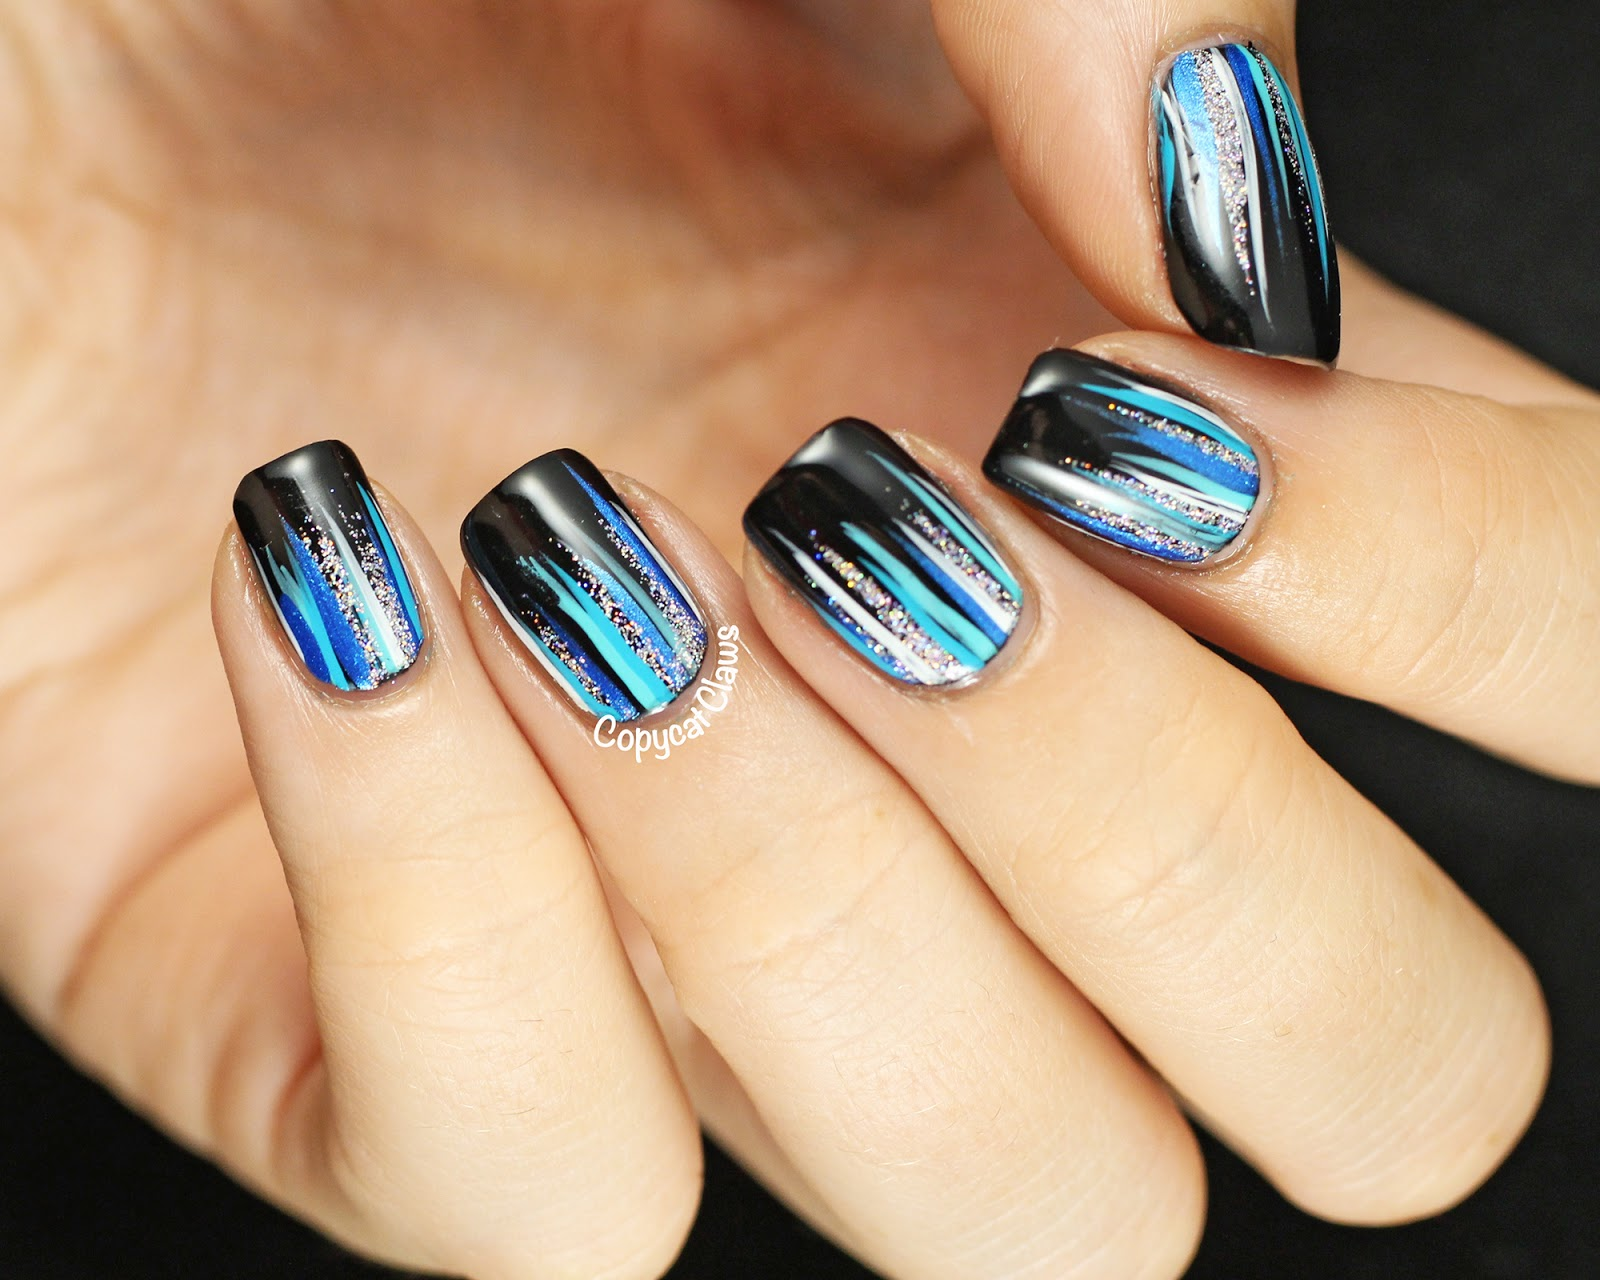 Copycat claws waterfall nail art i started with my favourite black a england camelot and then added various blue white and silver stripes using some stripe rite colours prinsesfo Choice Image